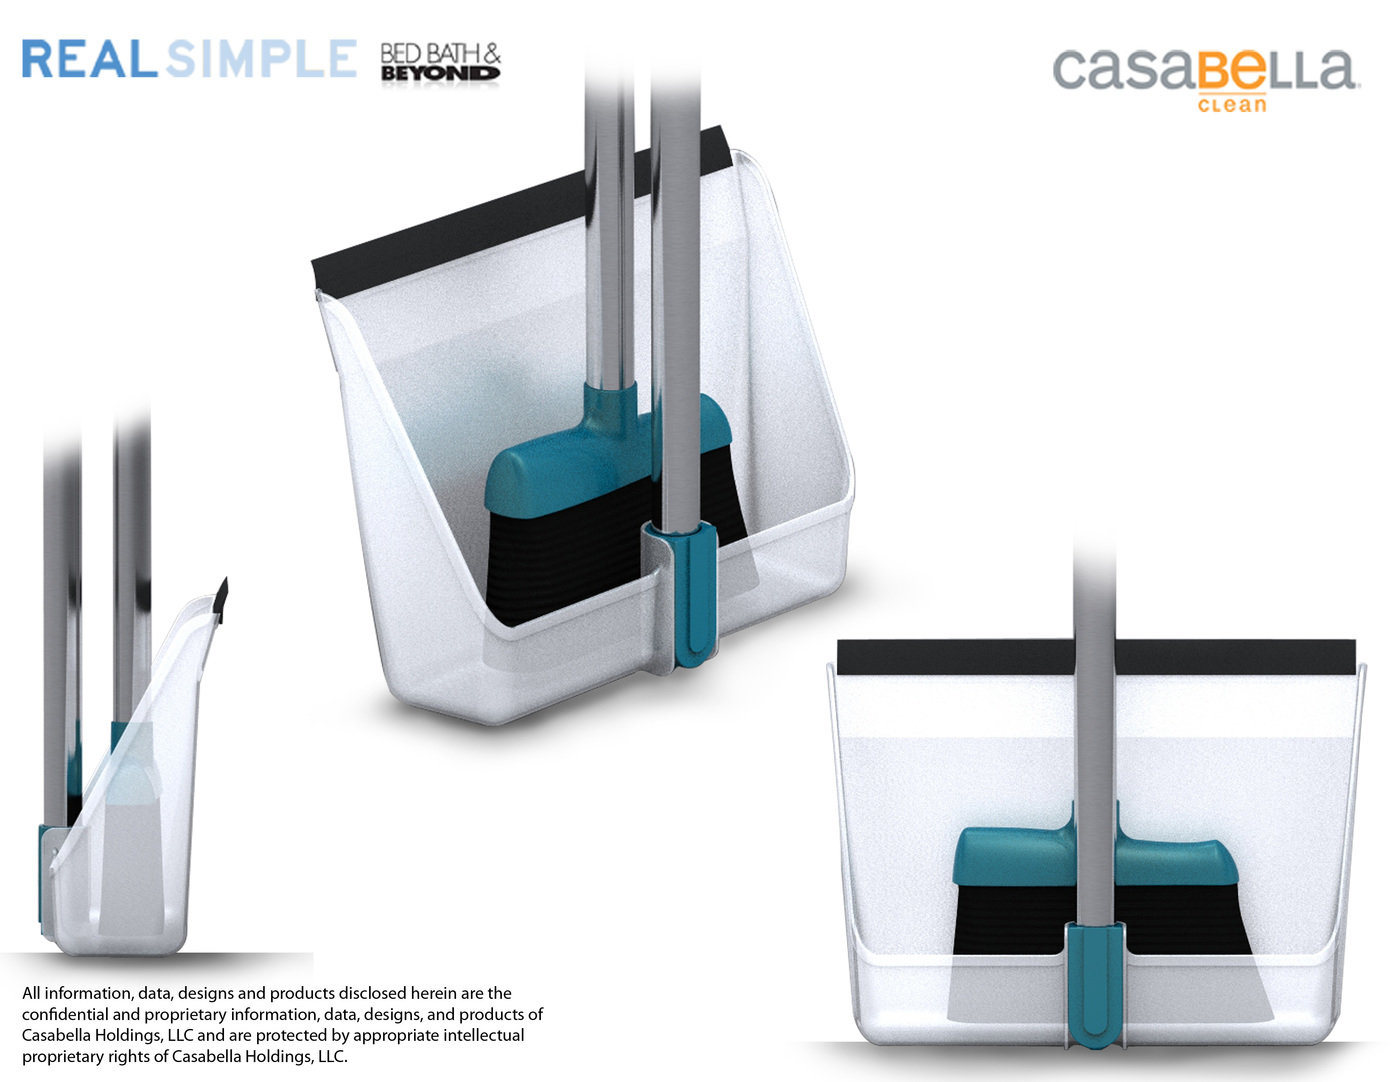 Real simple office supplies Hot Sale Coroflot Real Simple By Casabella By Kevin Jéan At Coroflotcom